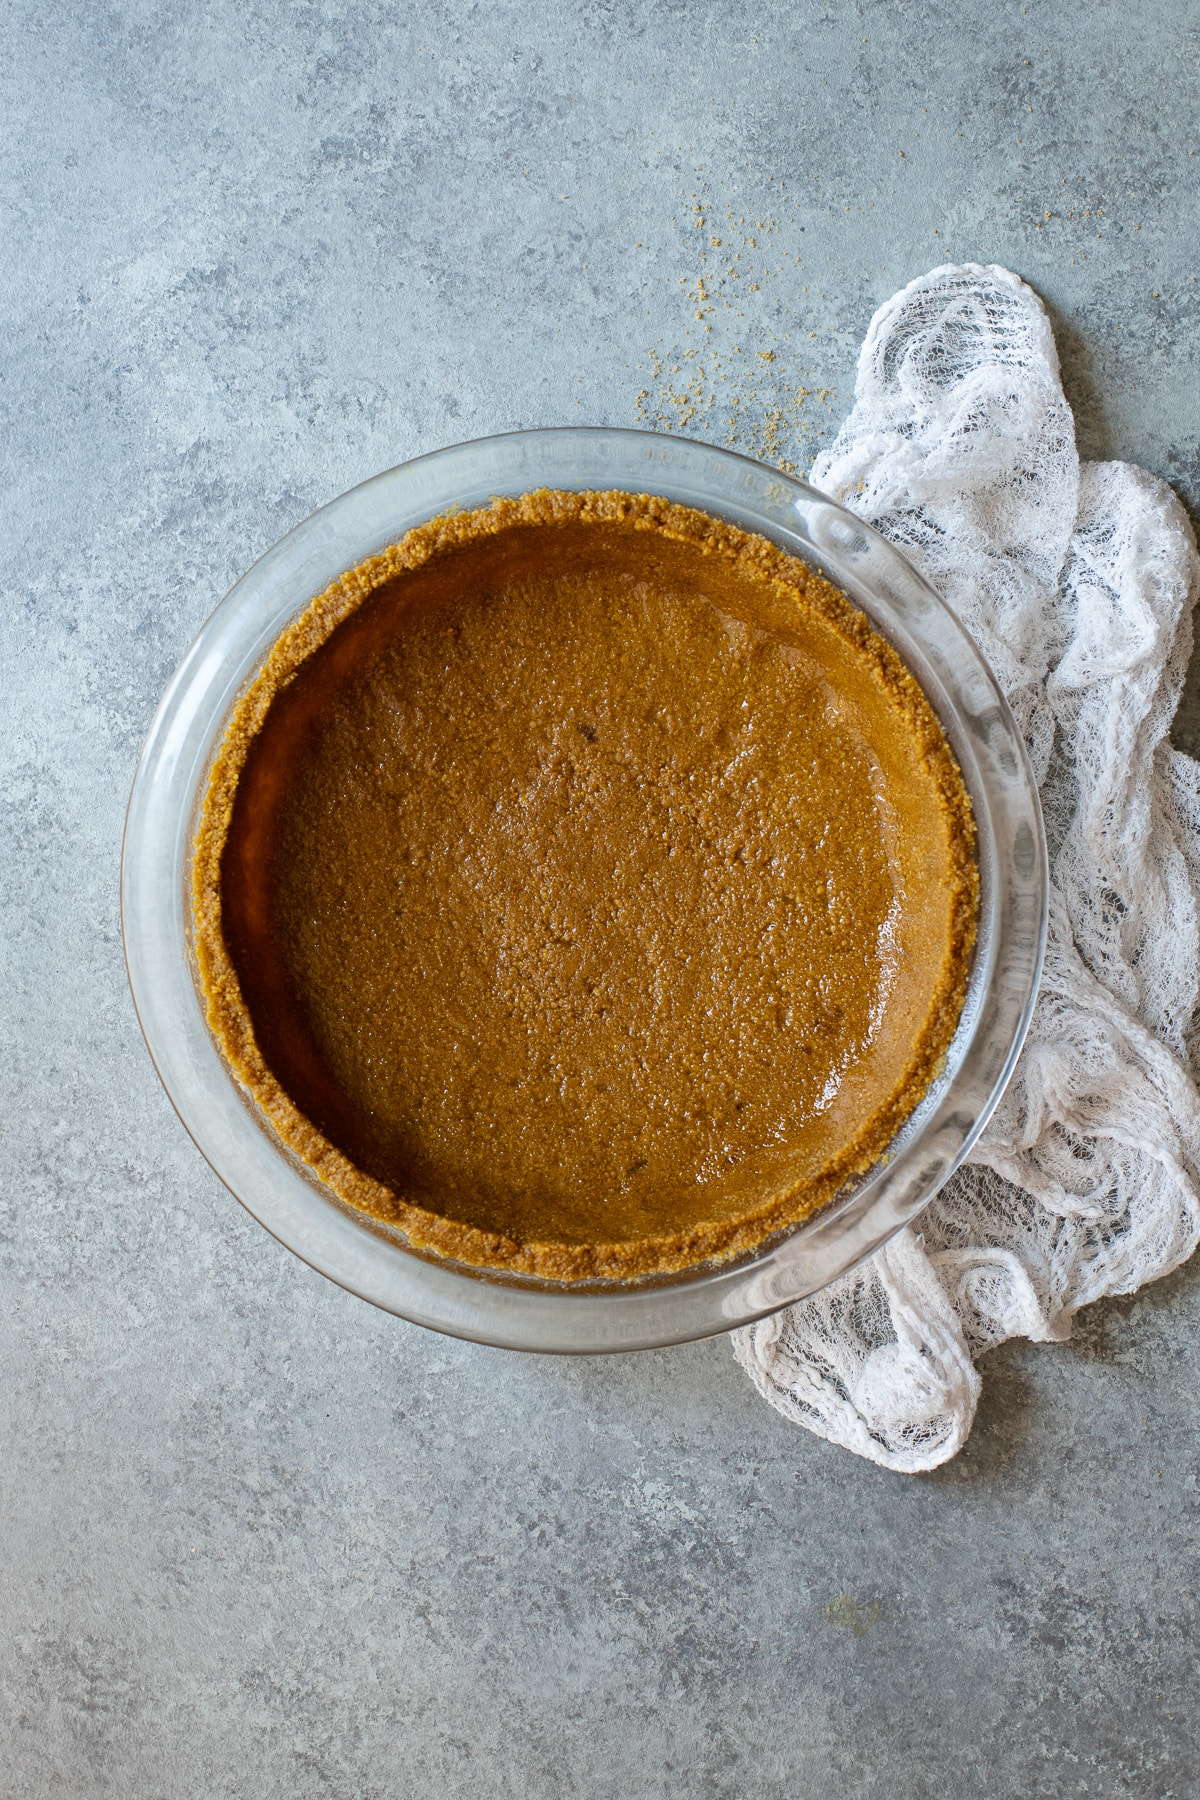 Graham cracker crust in a pie dish, pre-baked.